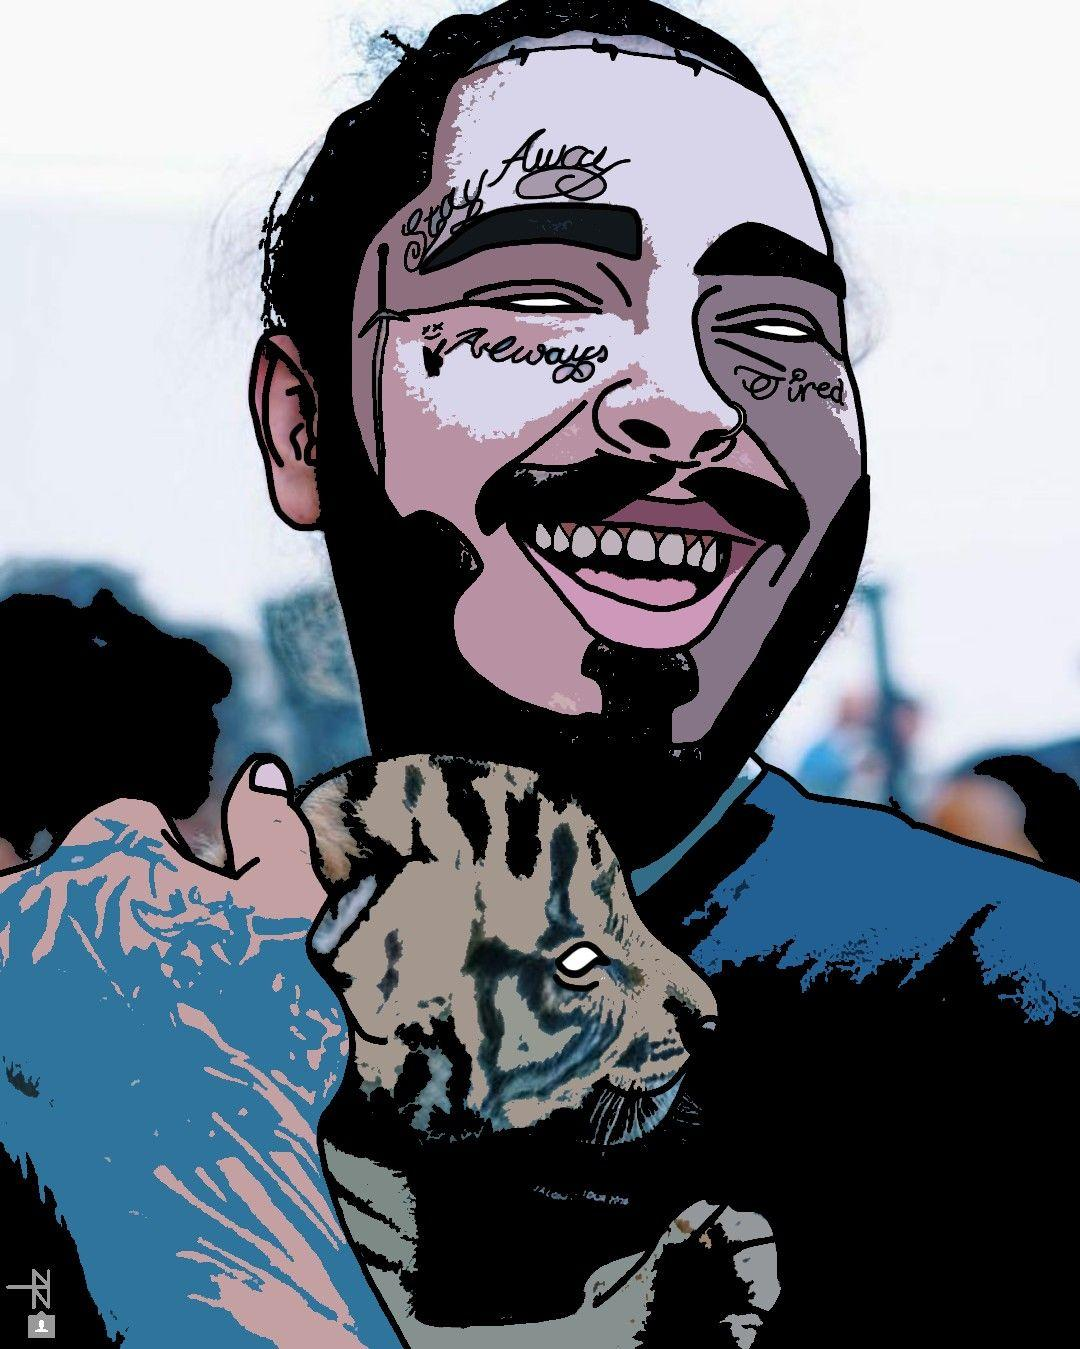 Post Malone Drawing: Post Malone Cartoon Wallpapers